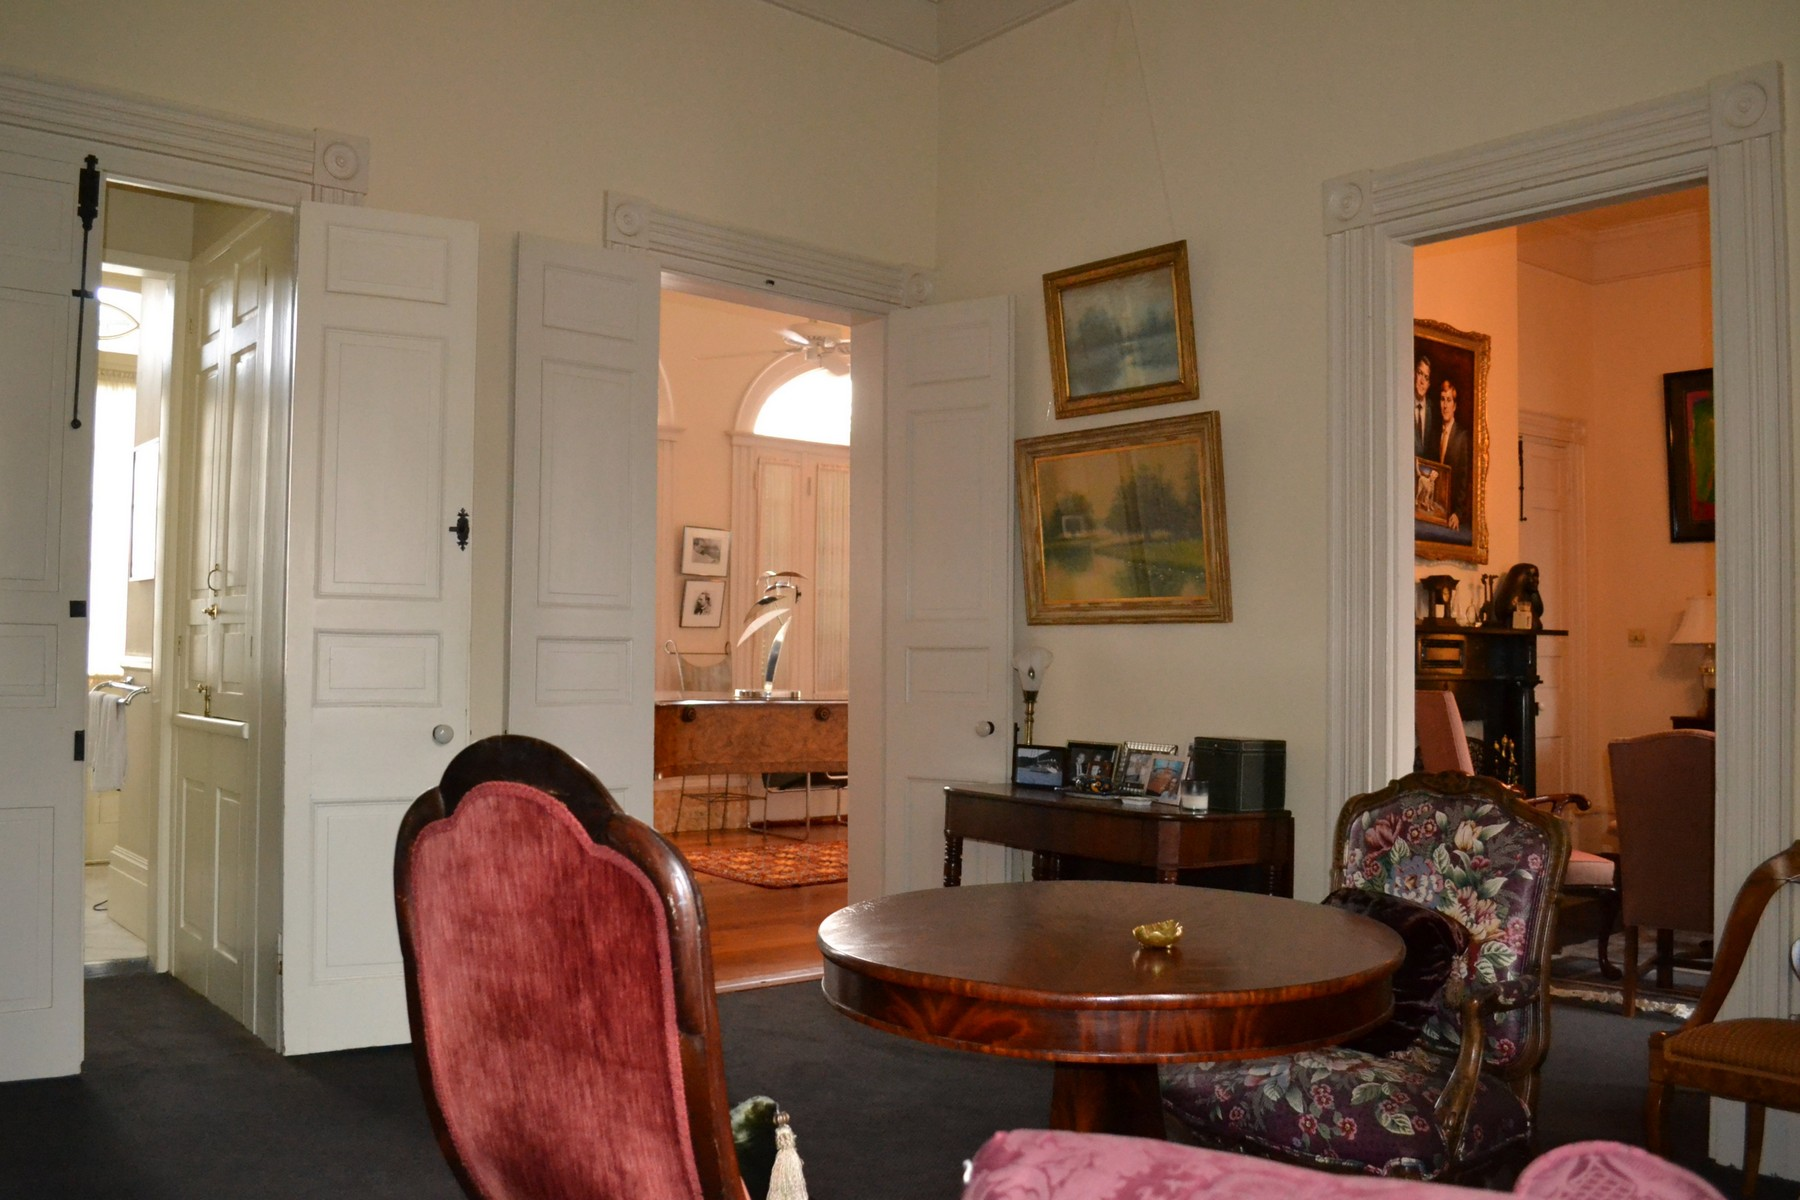 Additional photo for property listing at 516 St. Philip Street 516 St Philip St New Orleans, Louisiana 70116 United States